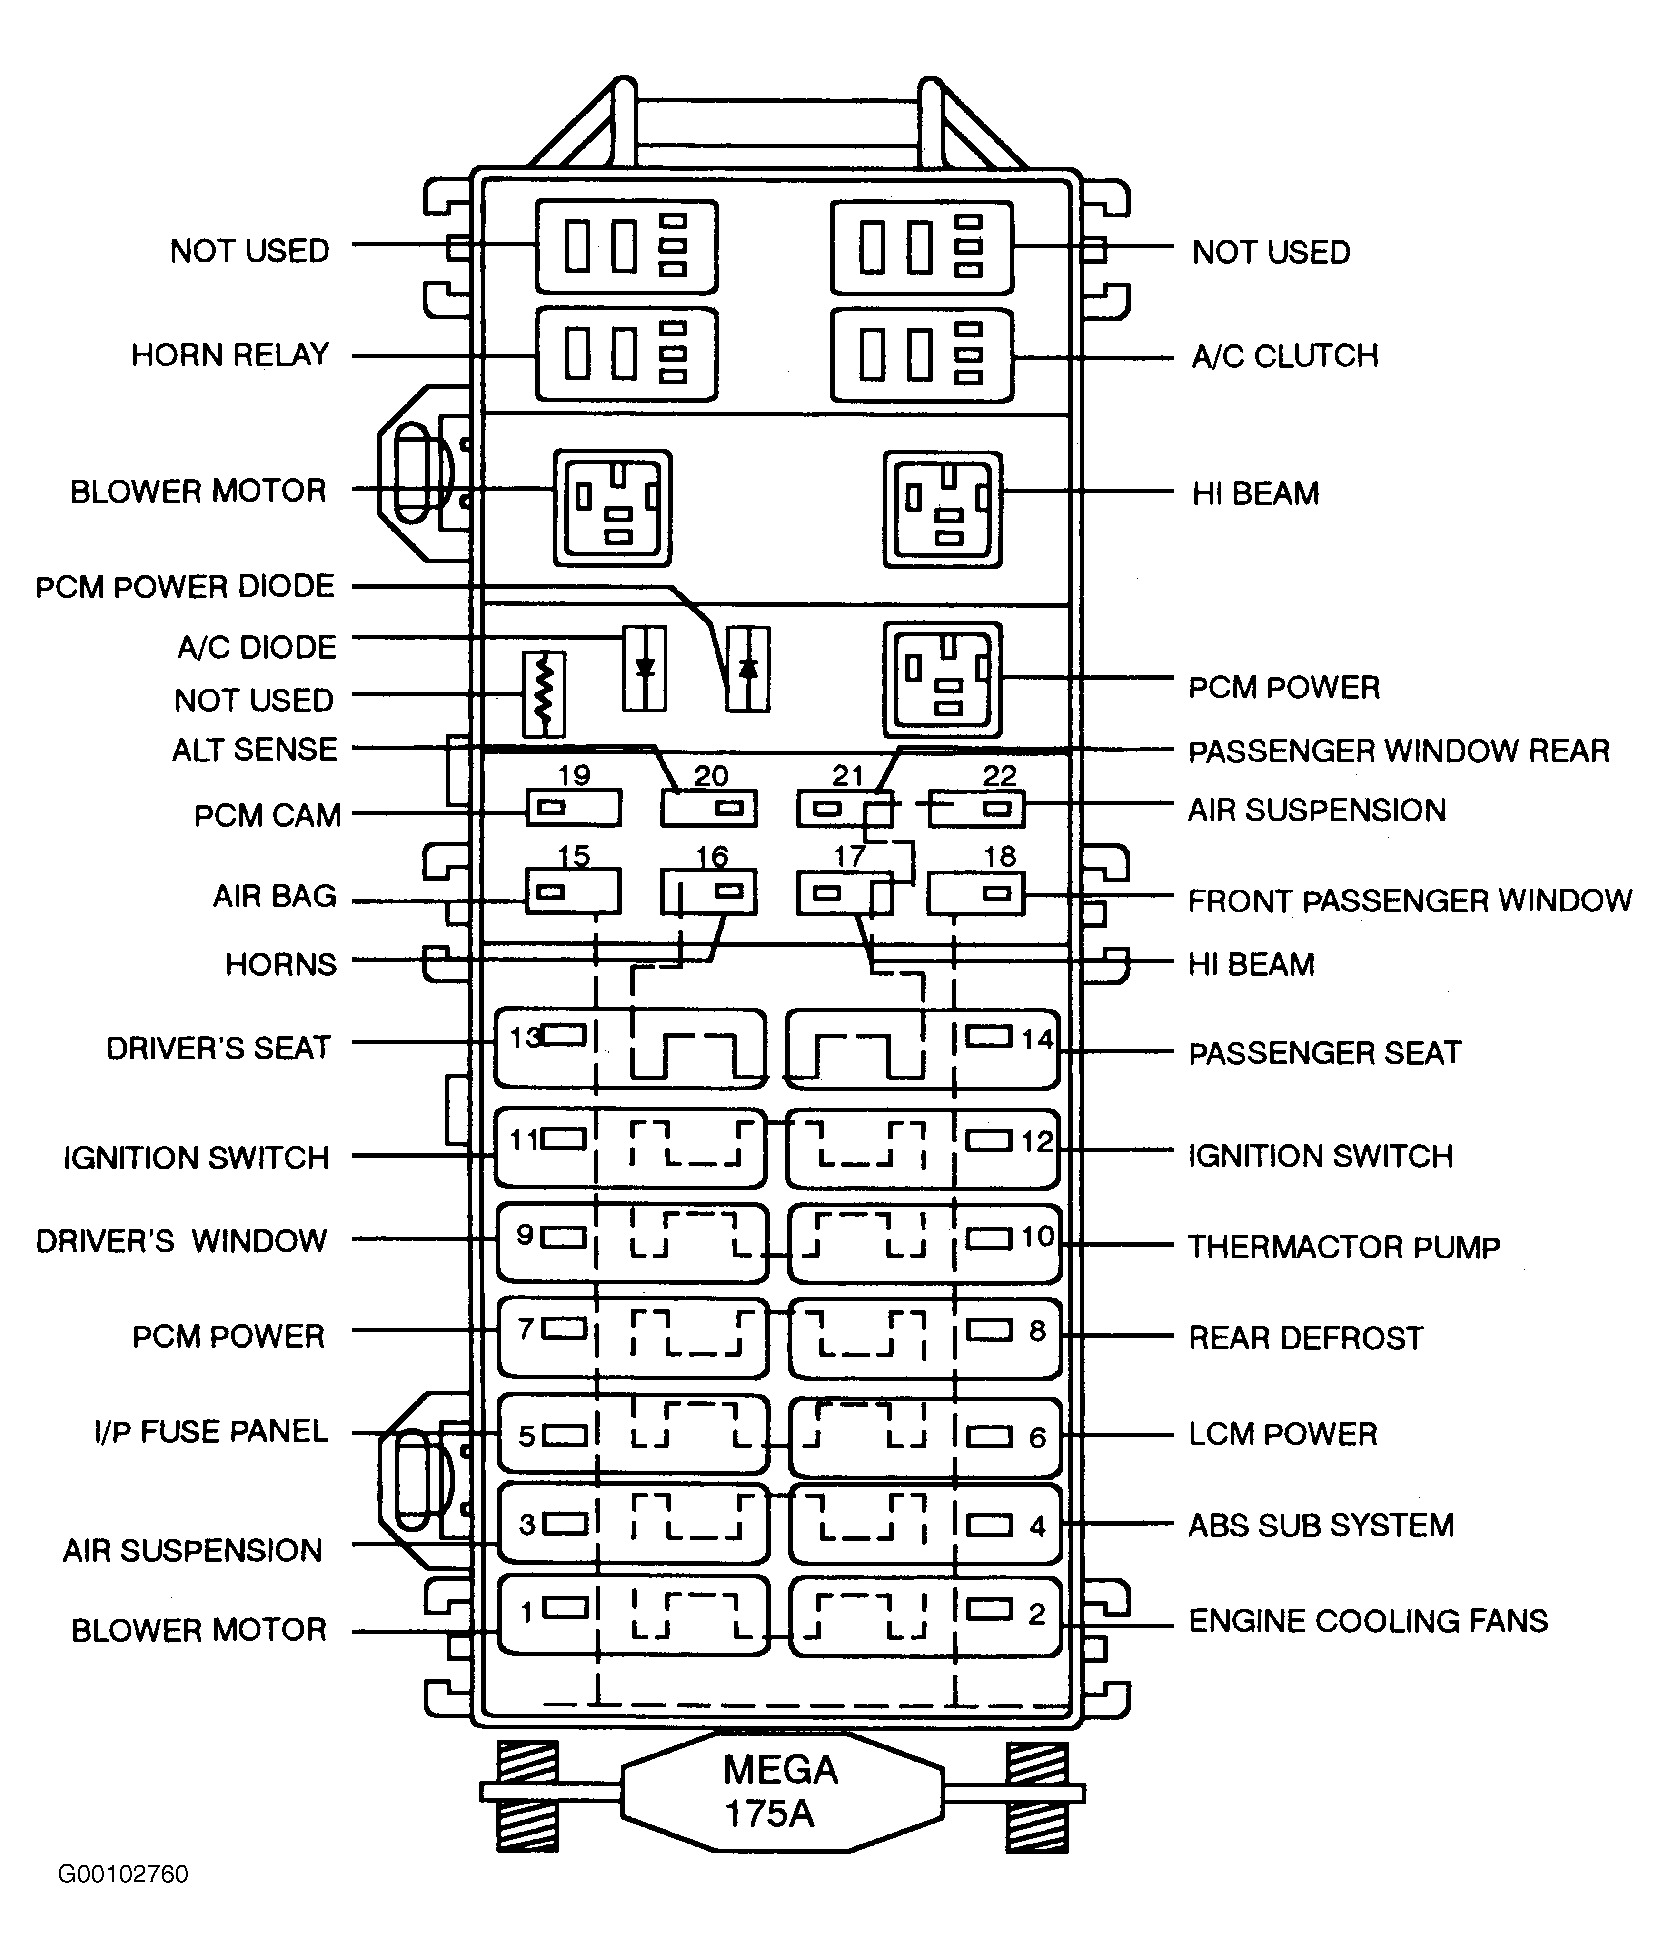 1999 Lincoln Town Car Fuse Diagram Wiring Libraries Monitor Panel K21 1996 Continental Box Third Level1998